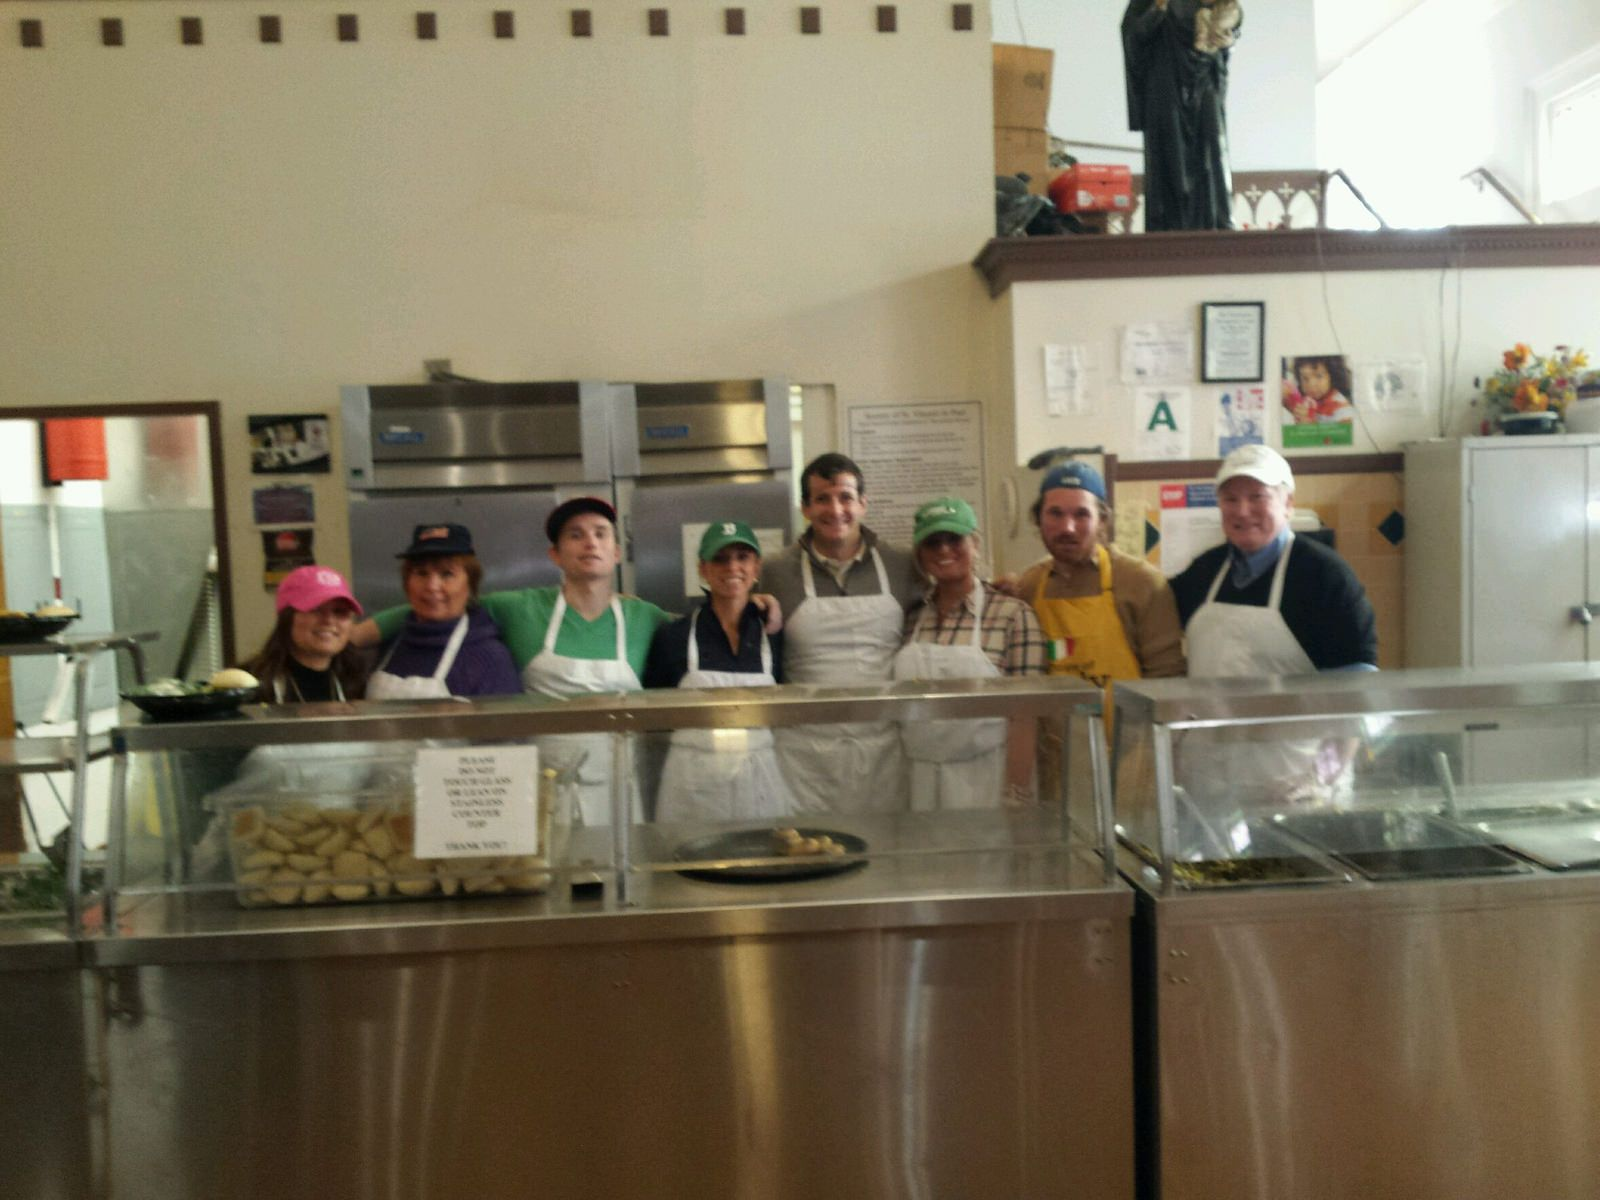 Volunteers preparing to serve fresh hot meals to the